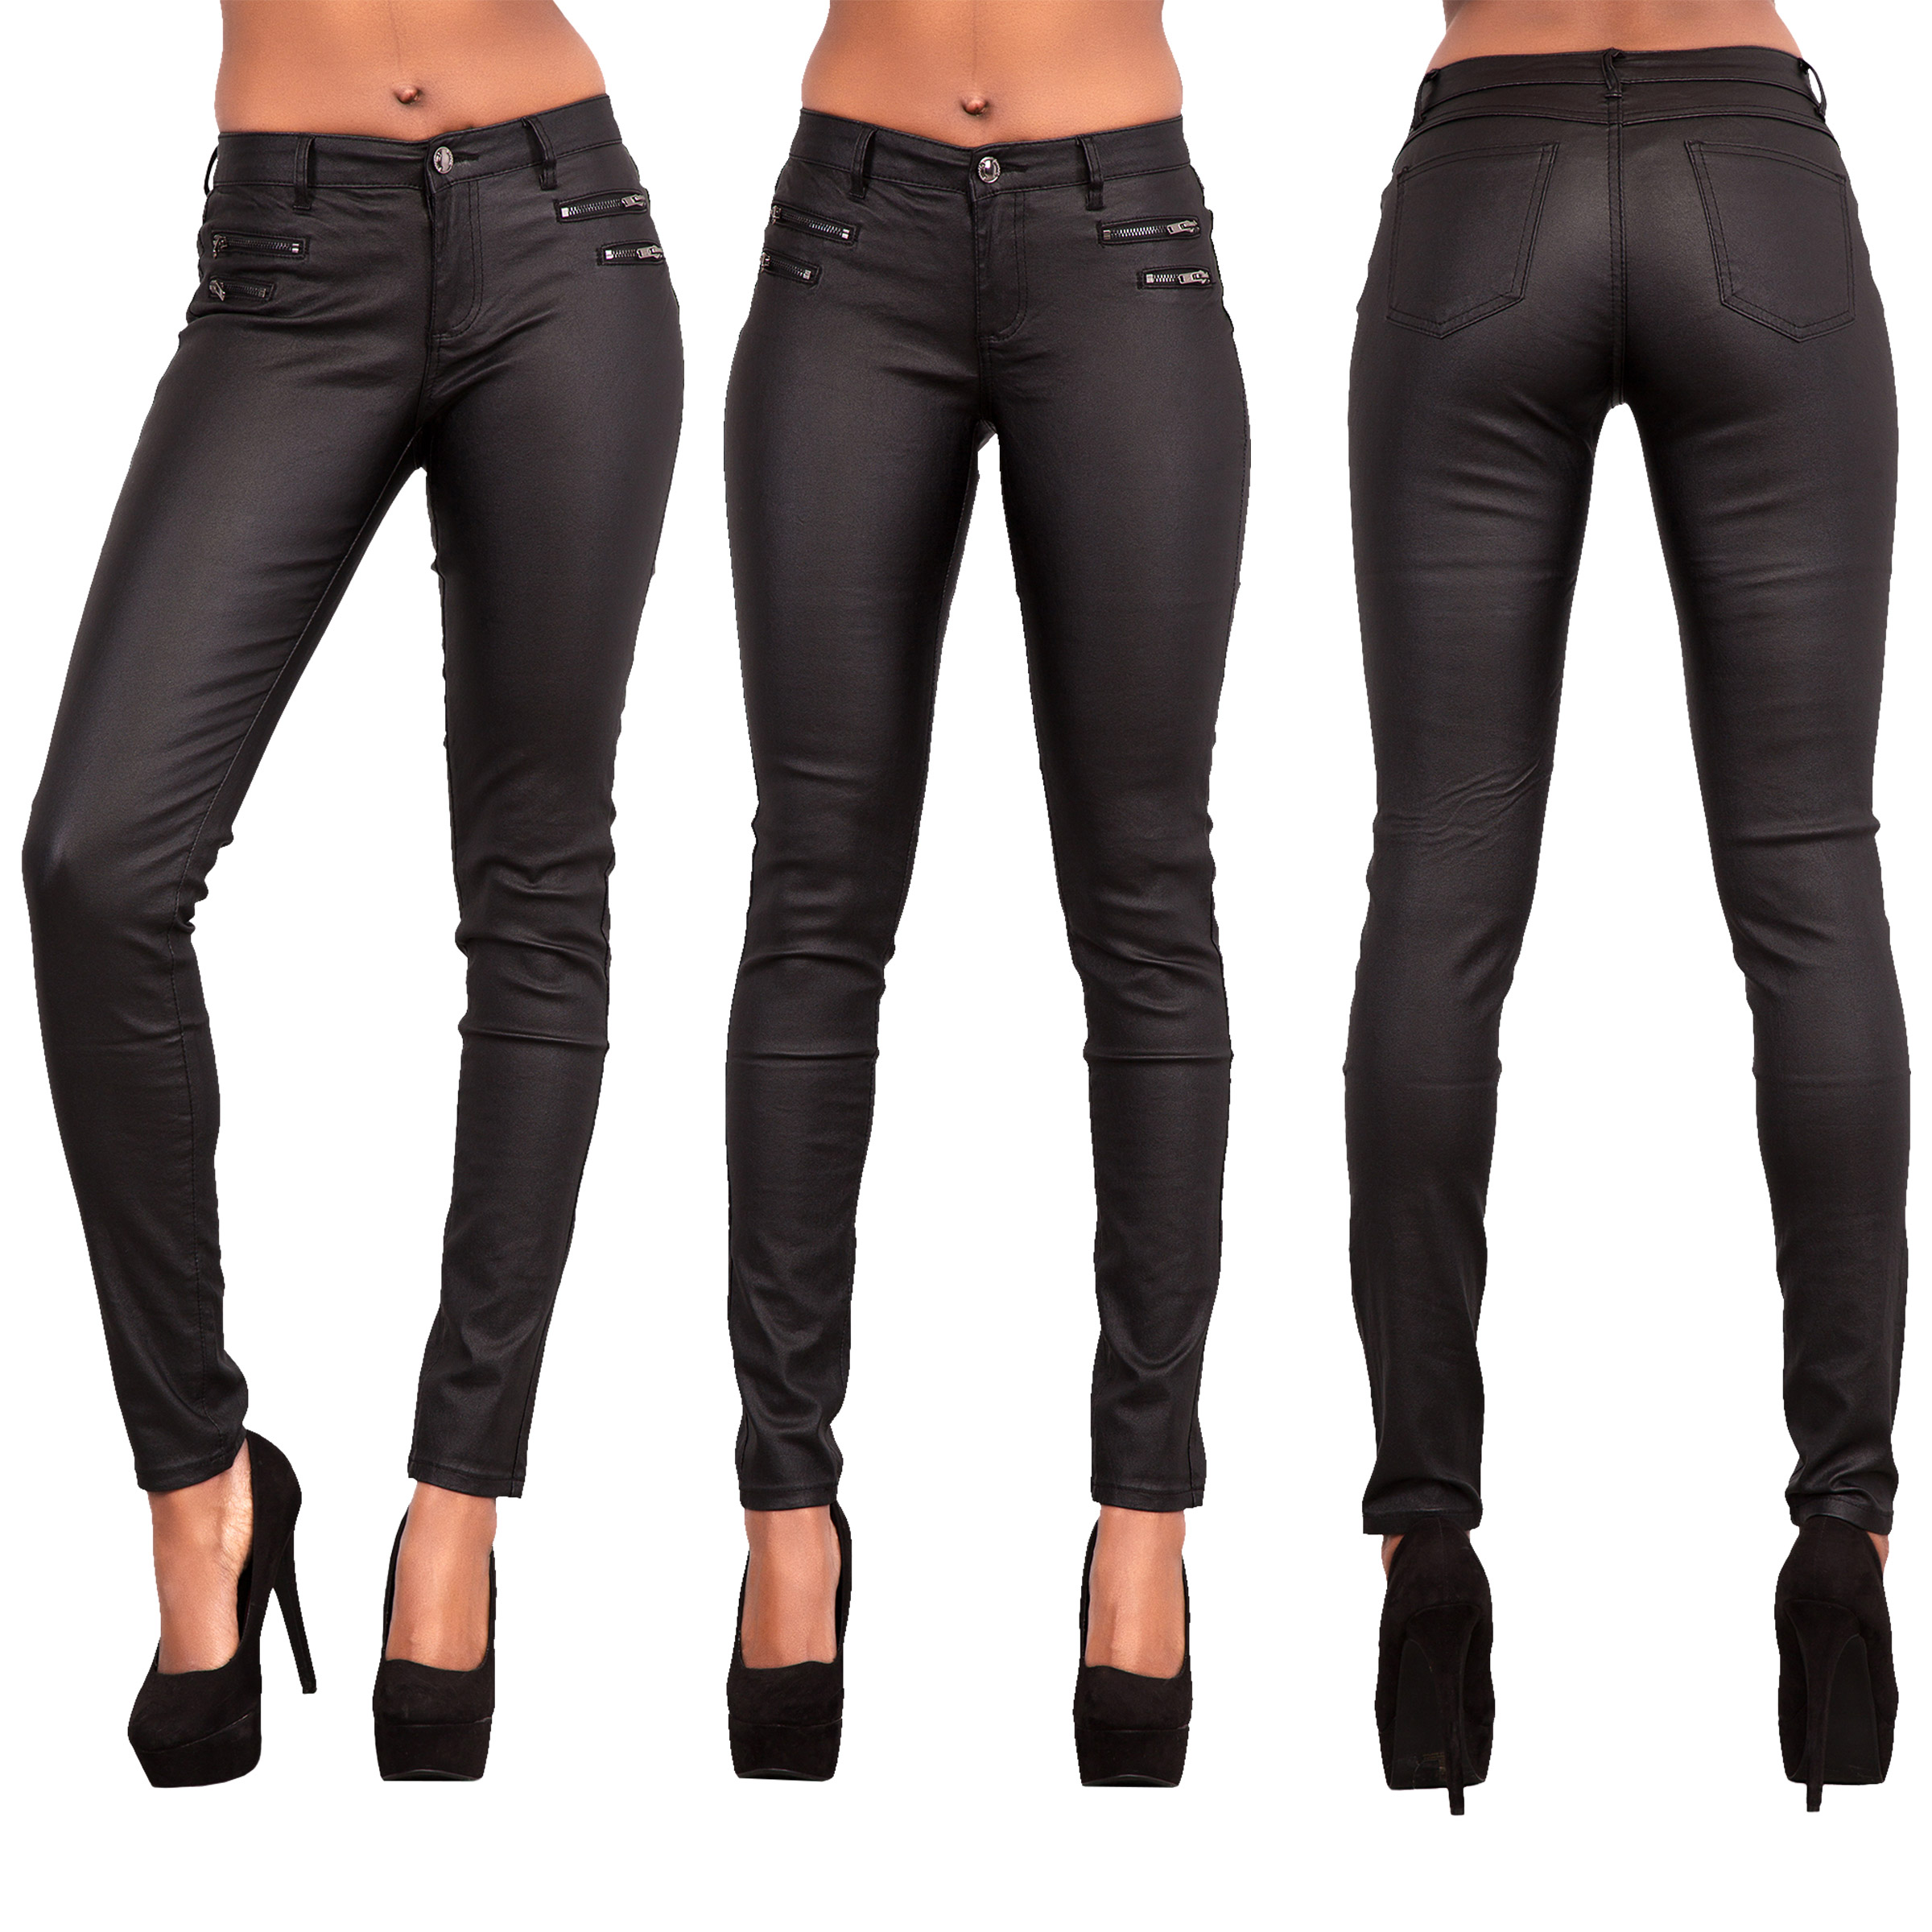 834112f13b12e Womens Leather Look Trousers ladies Wet Look Leggings Skinny Pants Size 6-16